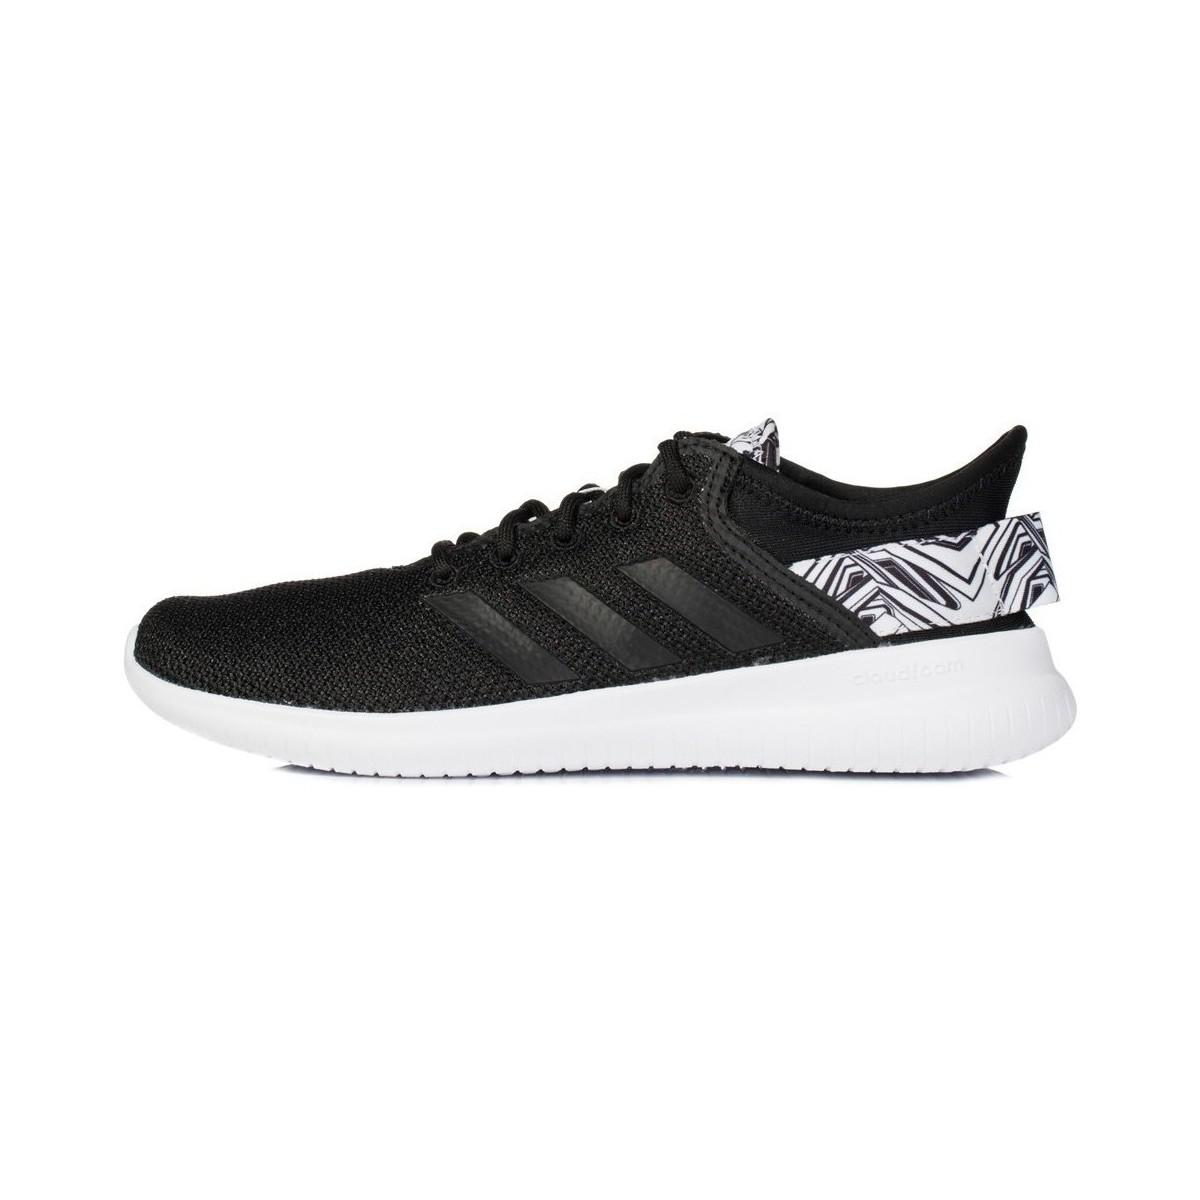 Adidas Cf Qtflex W Women s Shoes (trainers) In Black in Black - Lyst ba87aebd7